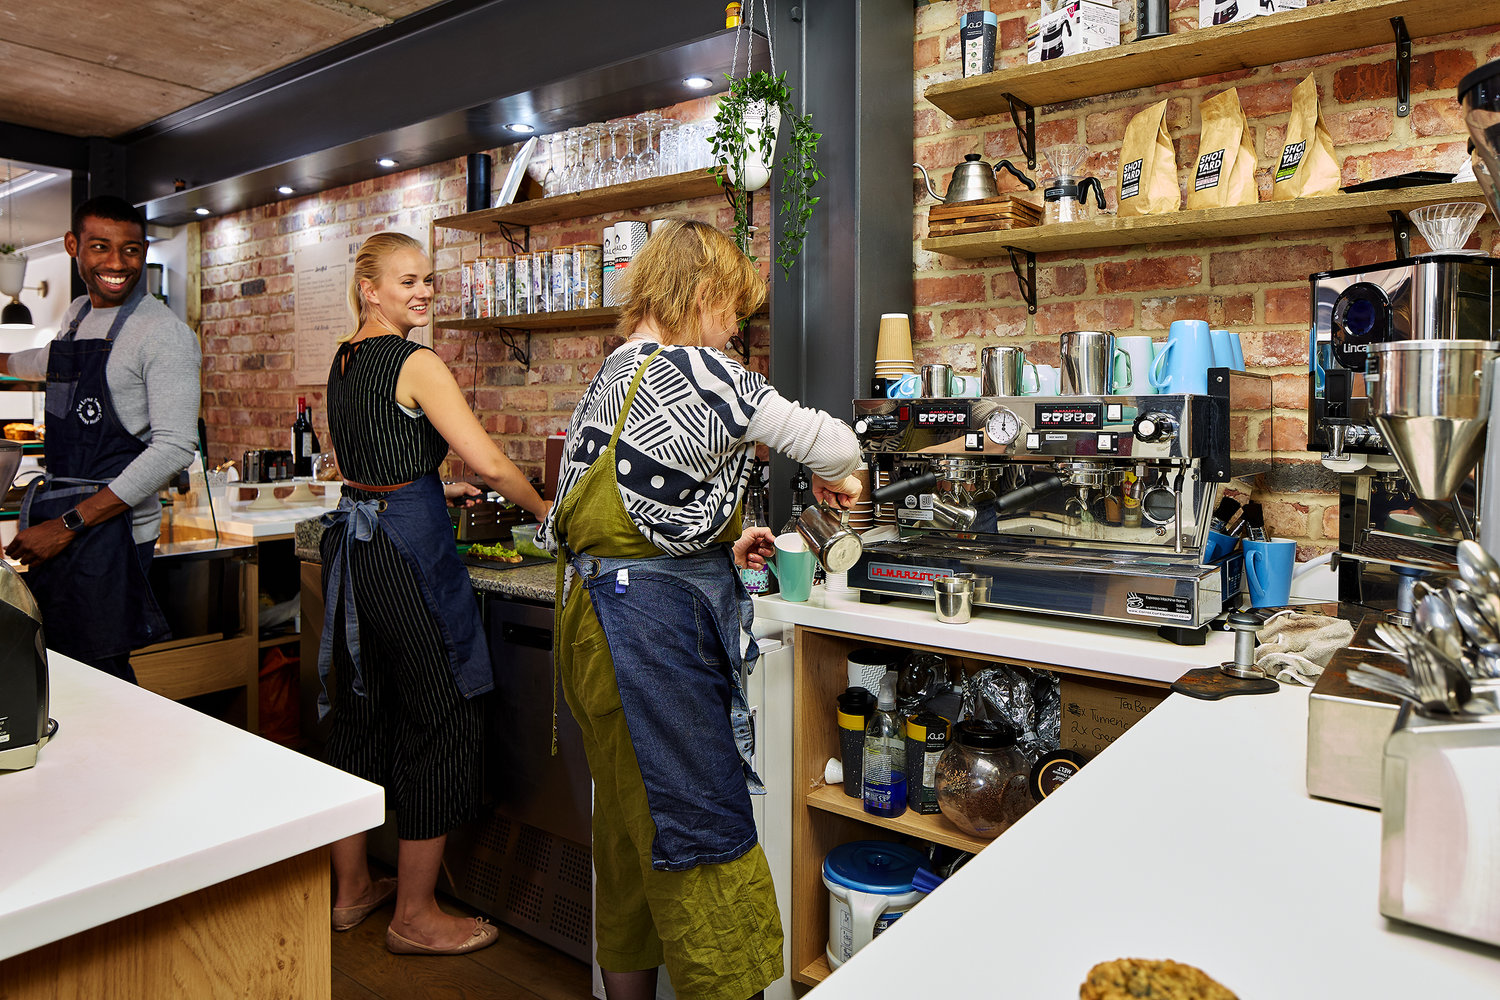 The Little Things Coffee Company